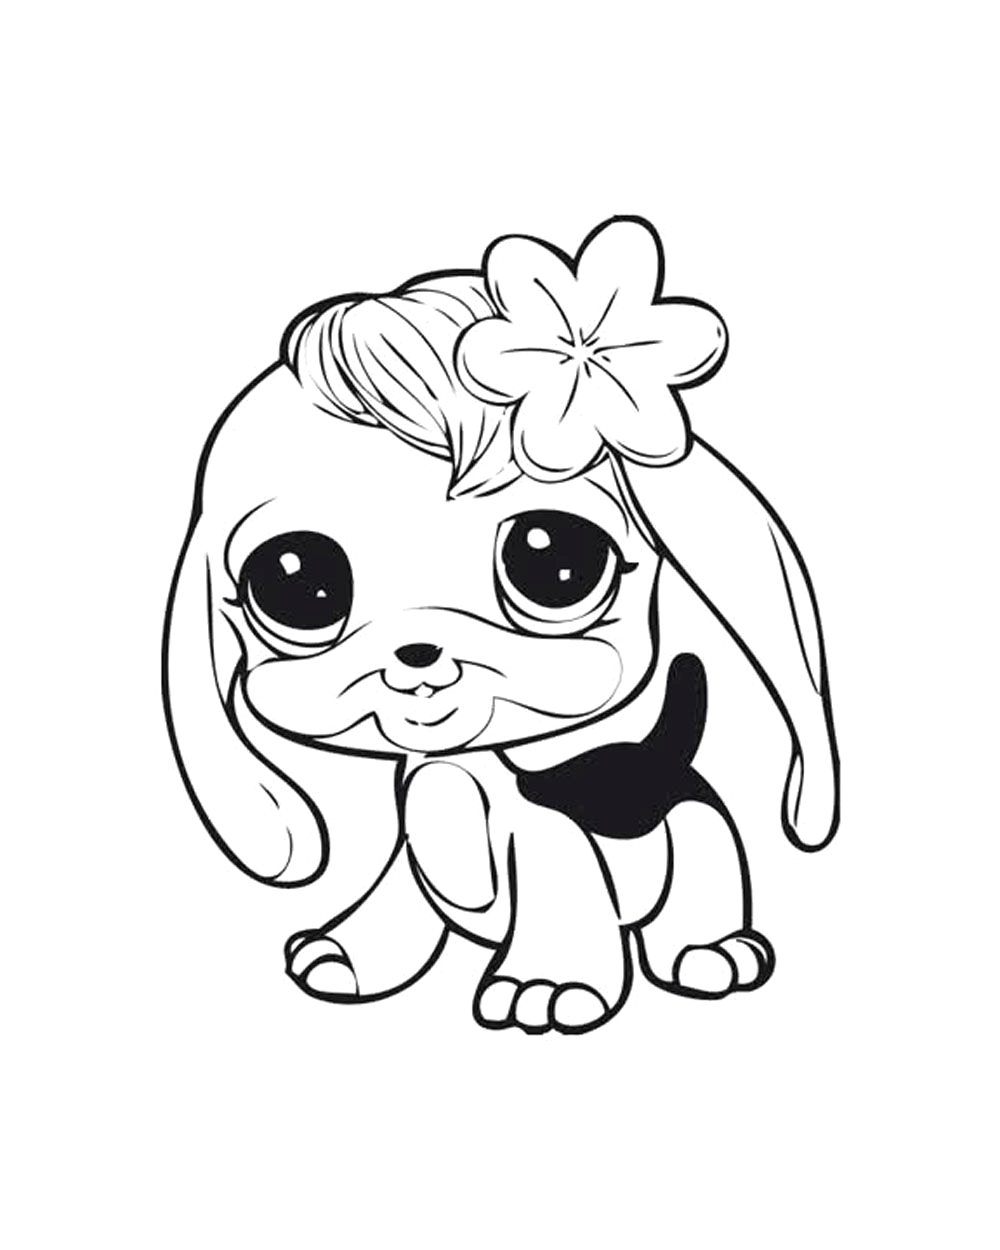 Littlest Pet Shop Coloring Pages Free to Print Free Littlest Pet Shop Coloring Pages